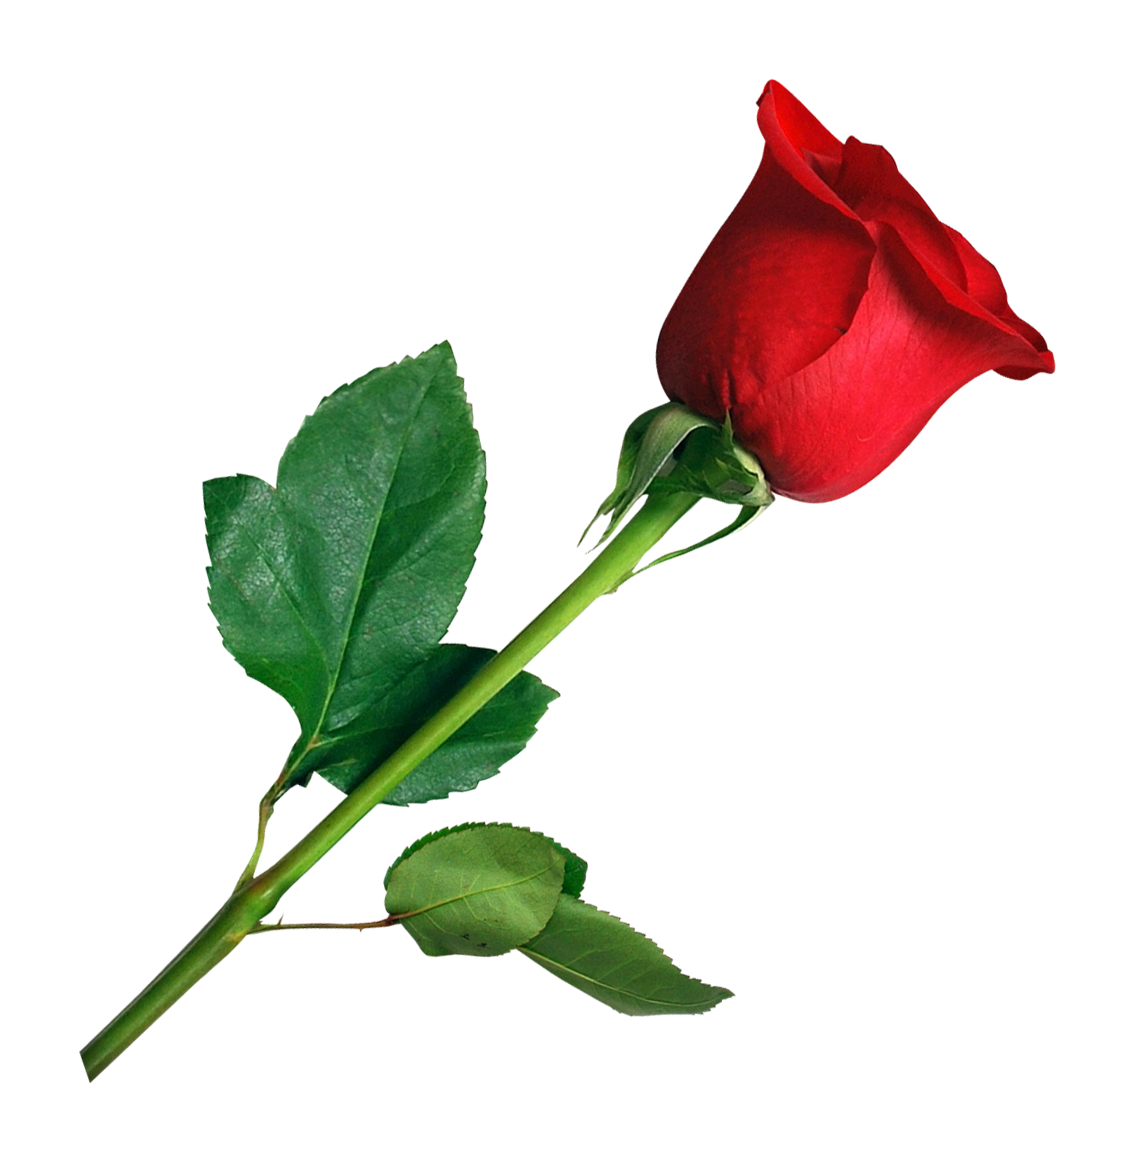 Red Roses With Leaf Png image #39851